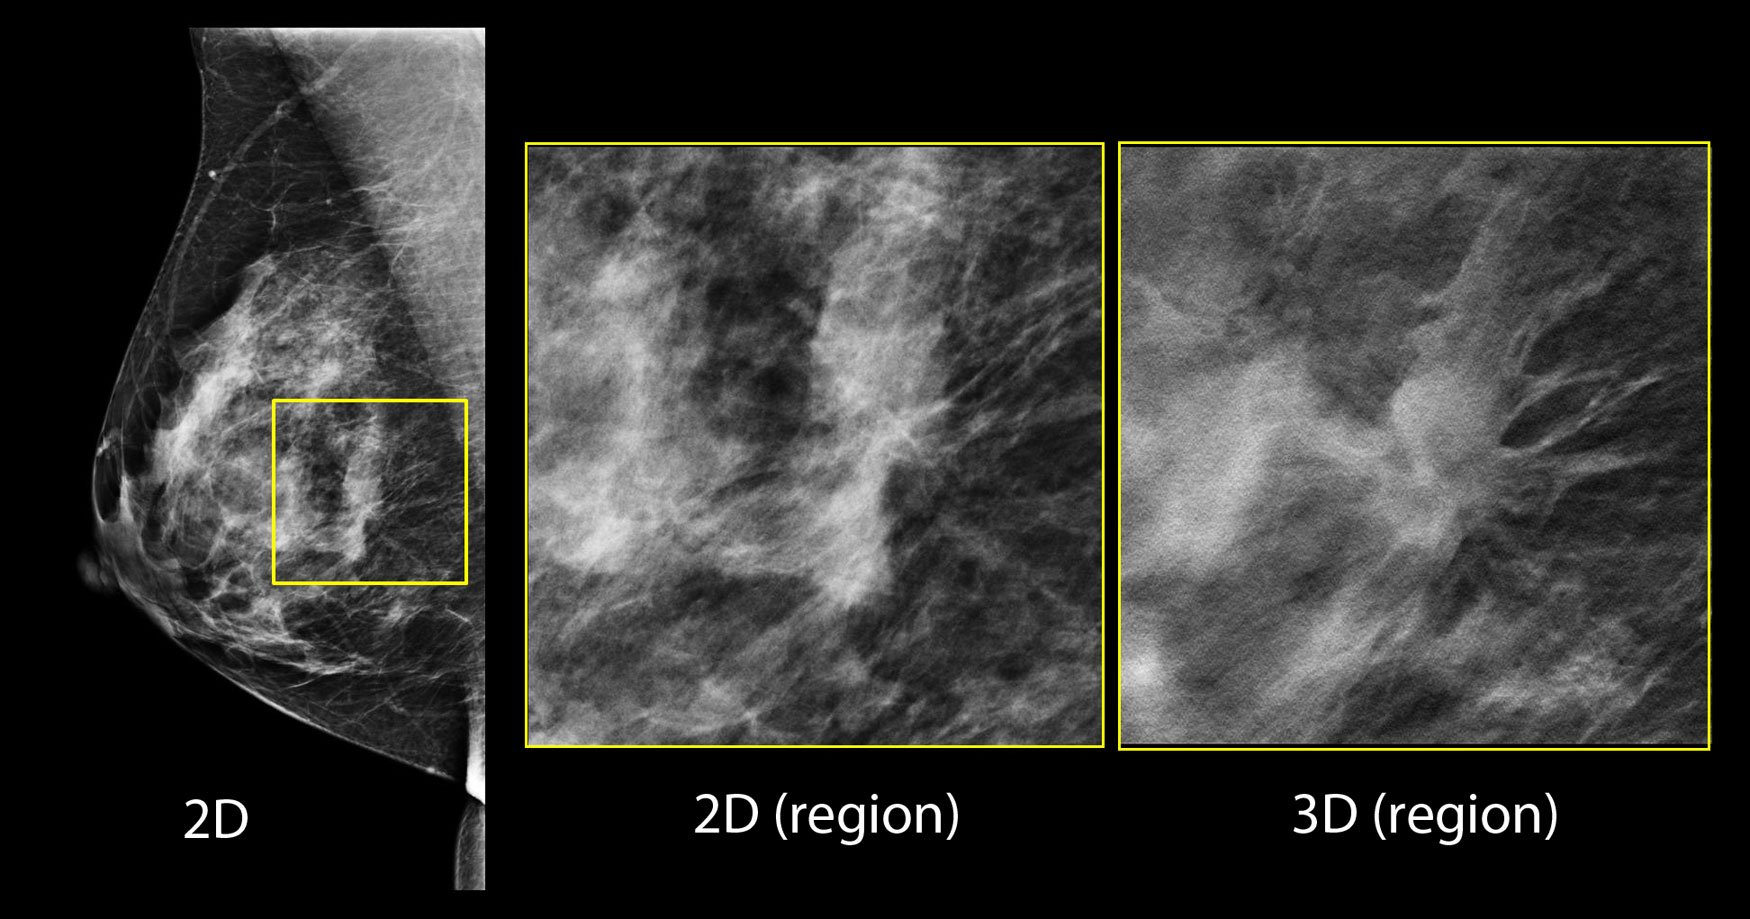 In the screening 2-D mammogram (left image), there is a possible lesion in the central breast, but its margins are difficult to assess. Using tomosynthesis this can be clearly seen to be a spiculated mass, and almost certainly a malignancy.